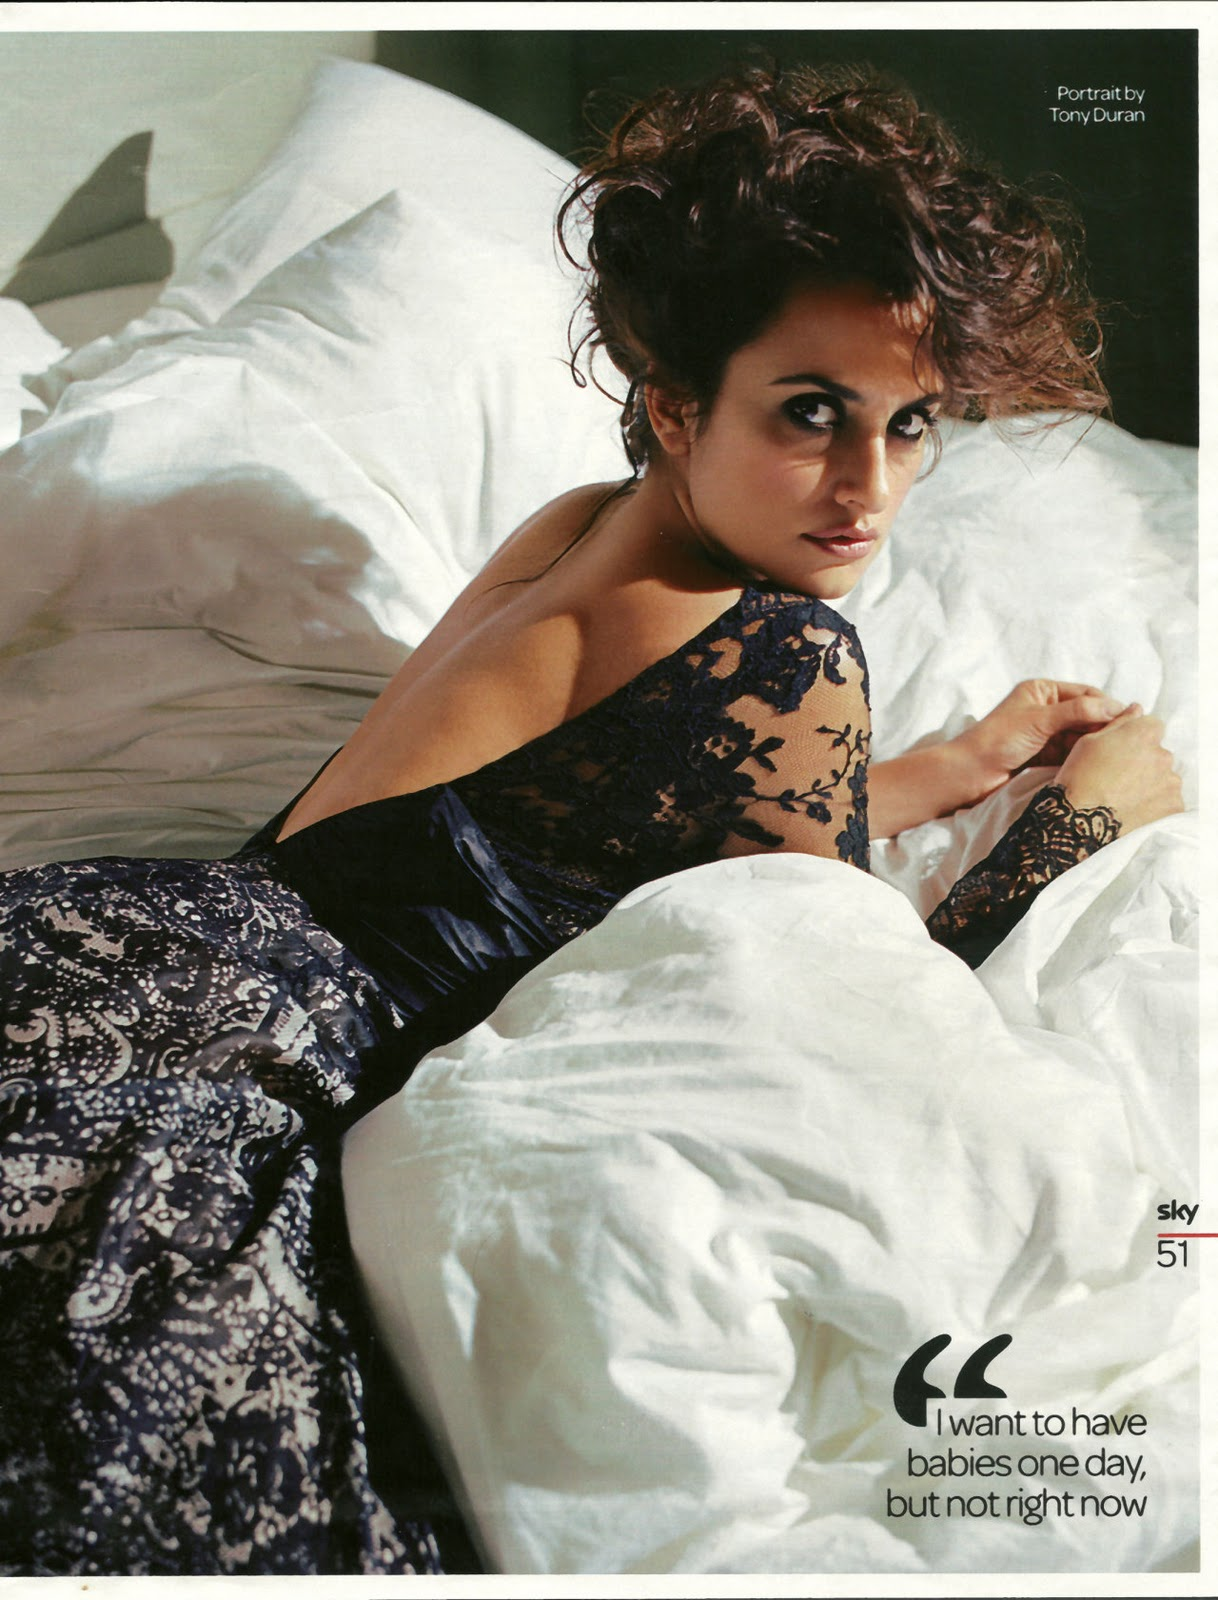 http://3.bp.blogspot.com/_b6PGg1UK9eI/TUqOF4YhH3I/AAAAAAAAAEQ/KuMVI-qm3LM/s1600/Penelope-Cruz-on-her-belly.jpg